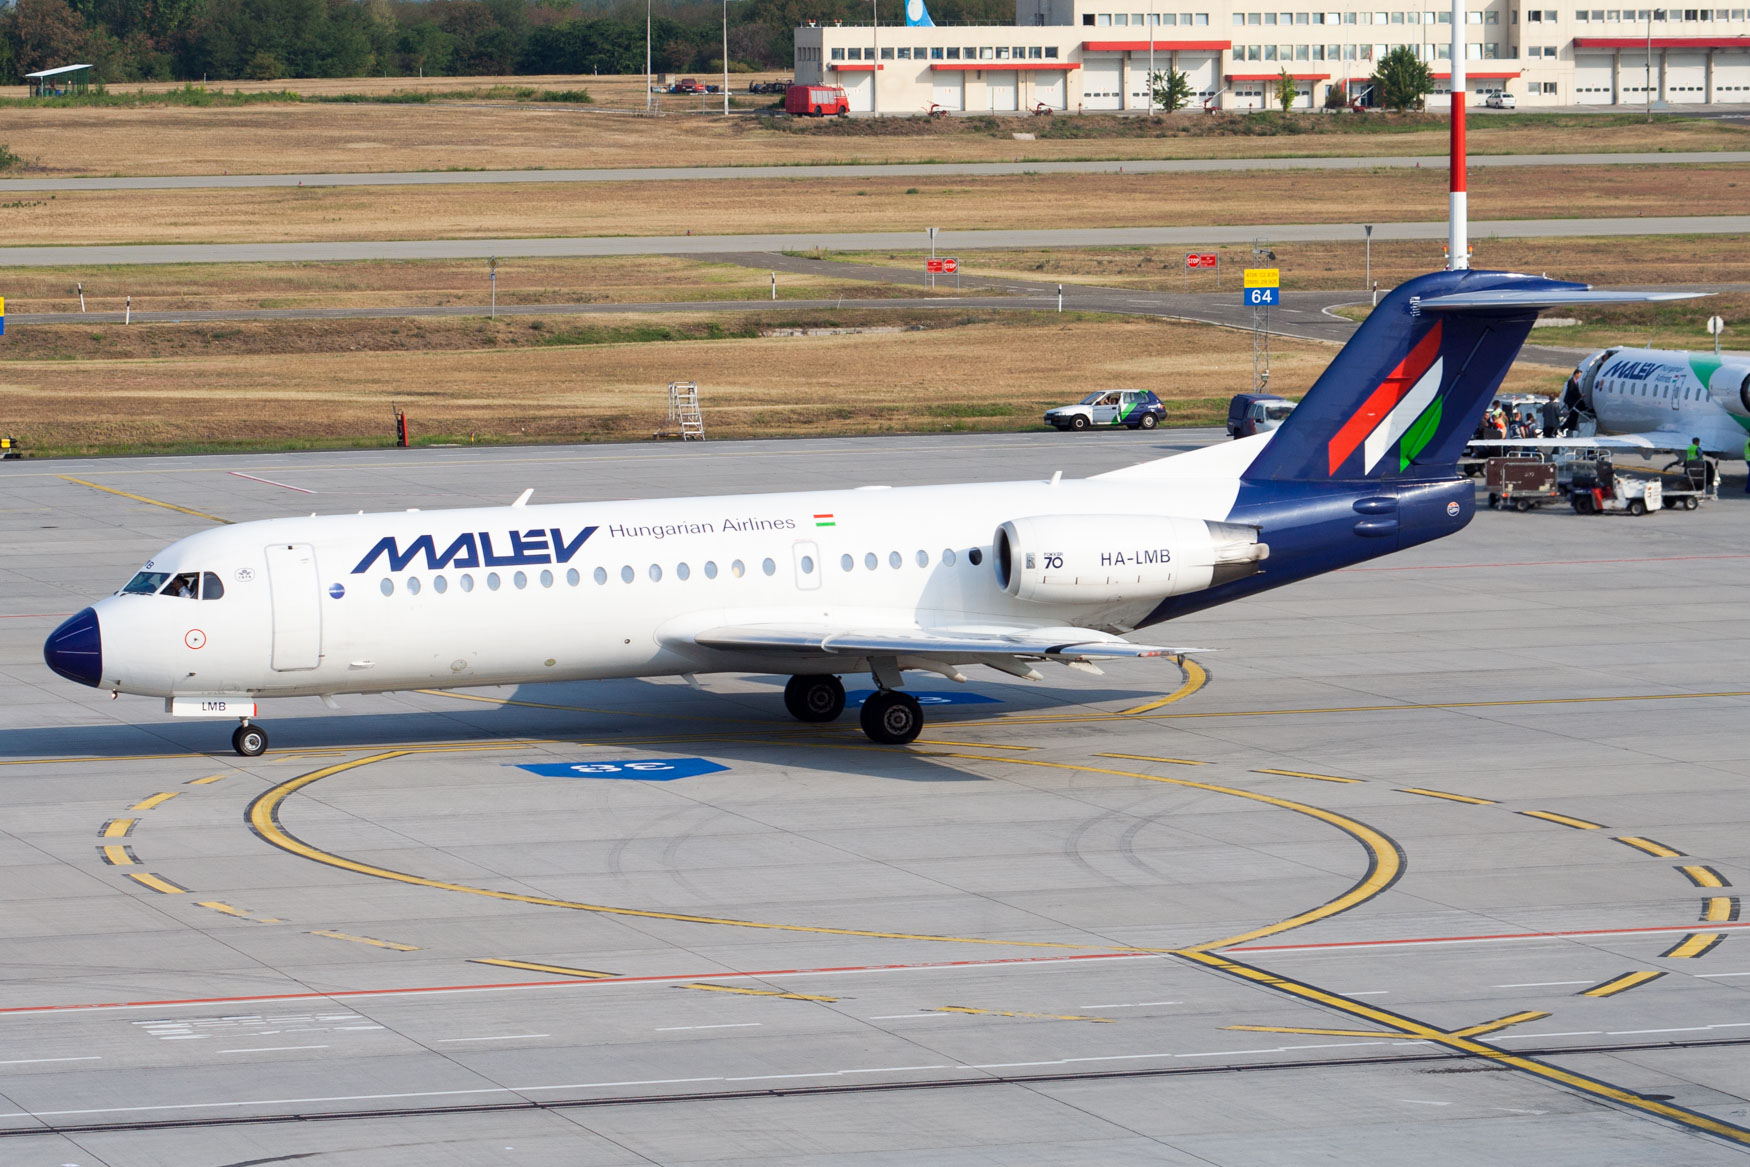 Malev F70 at Budapest Airport